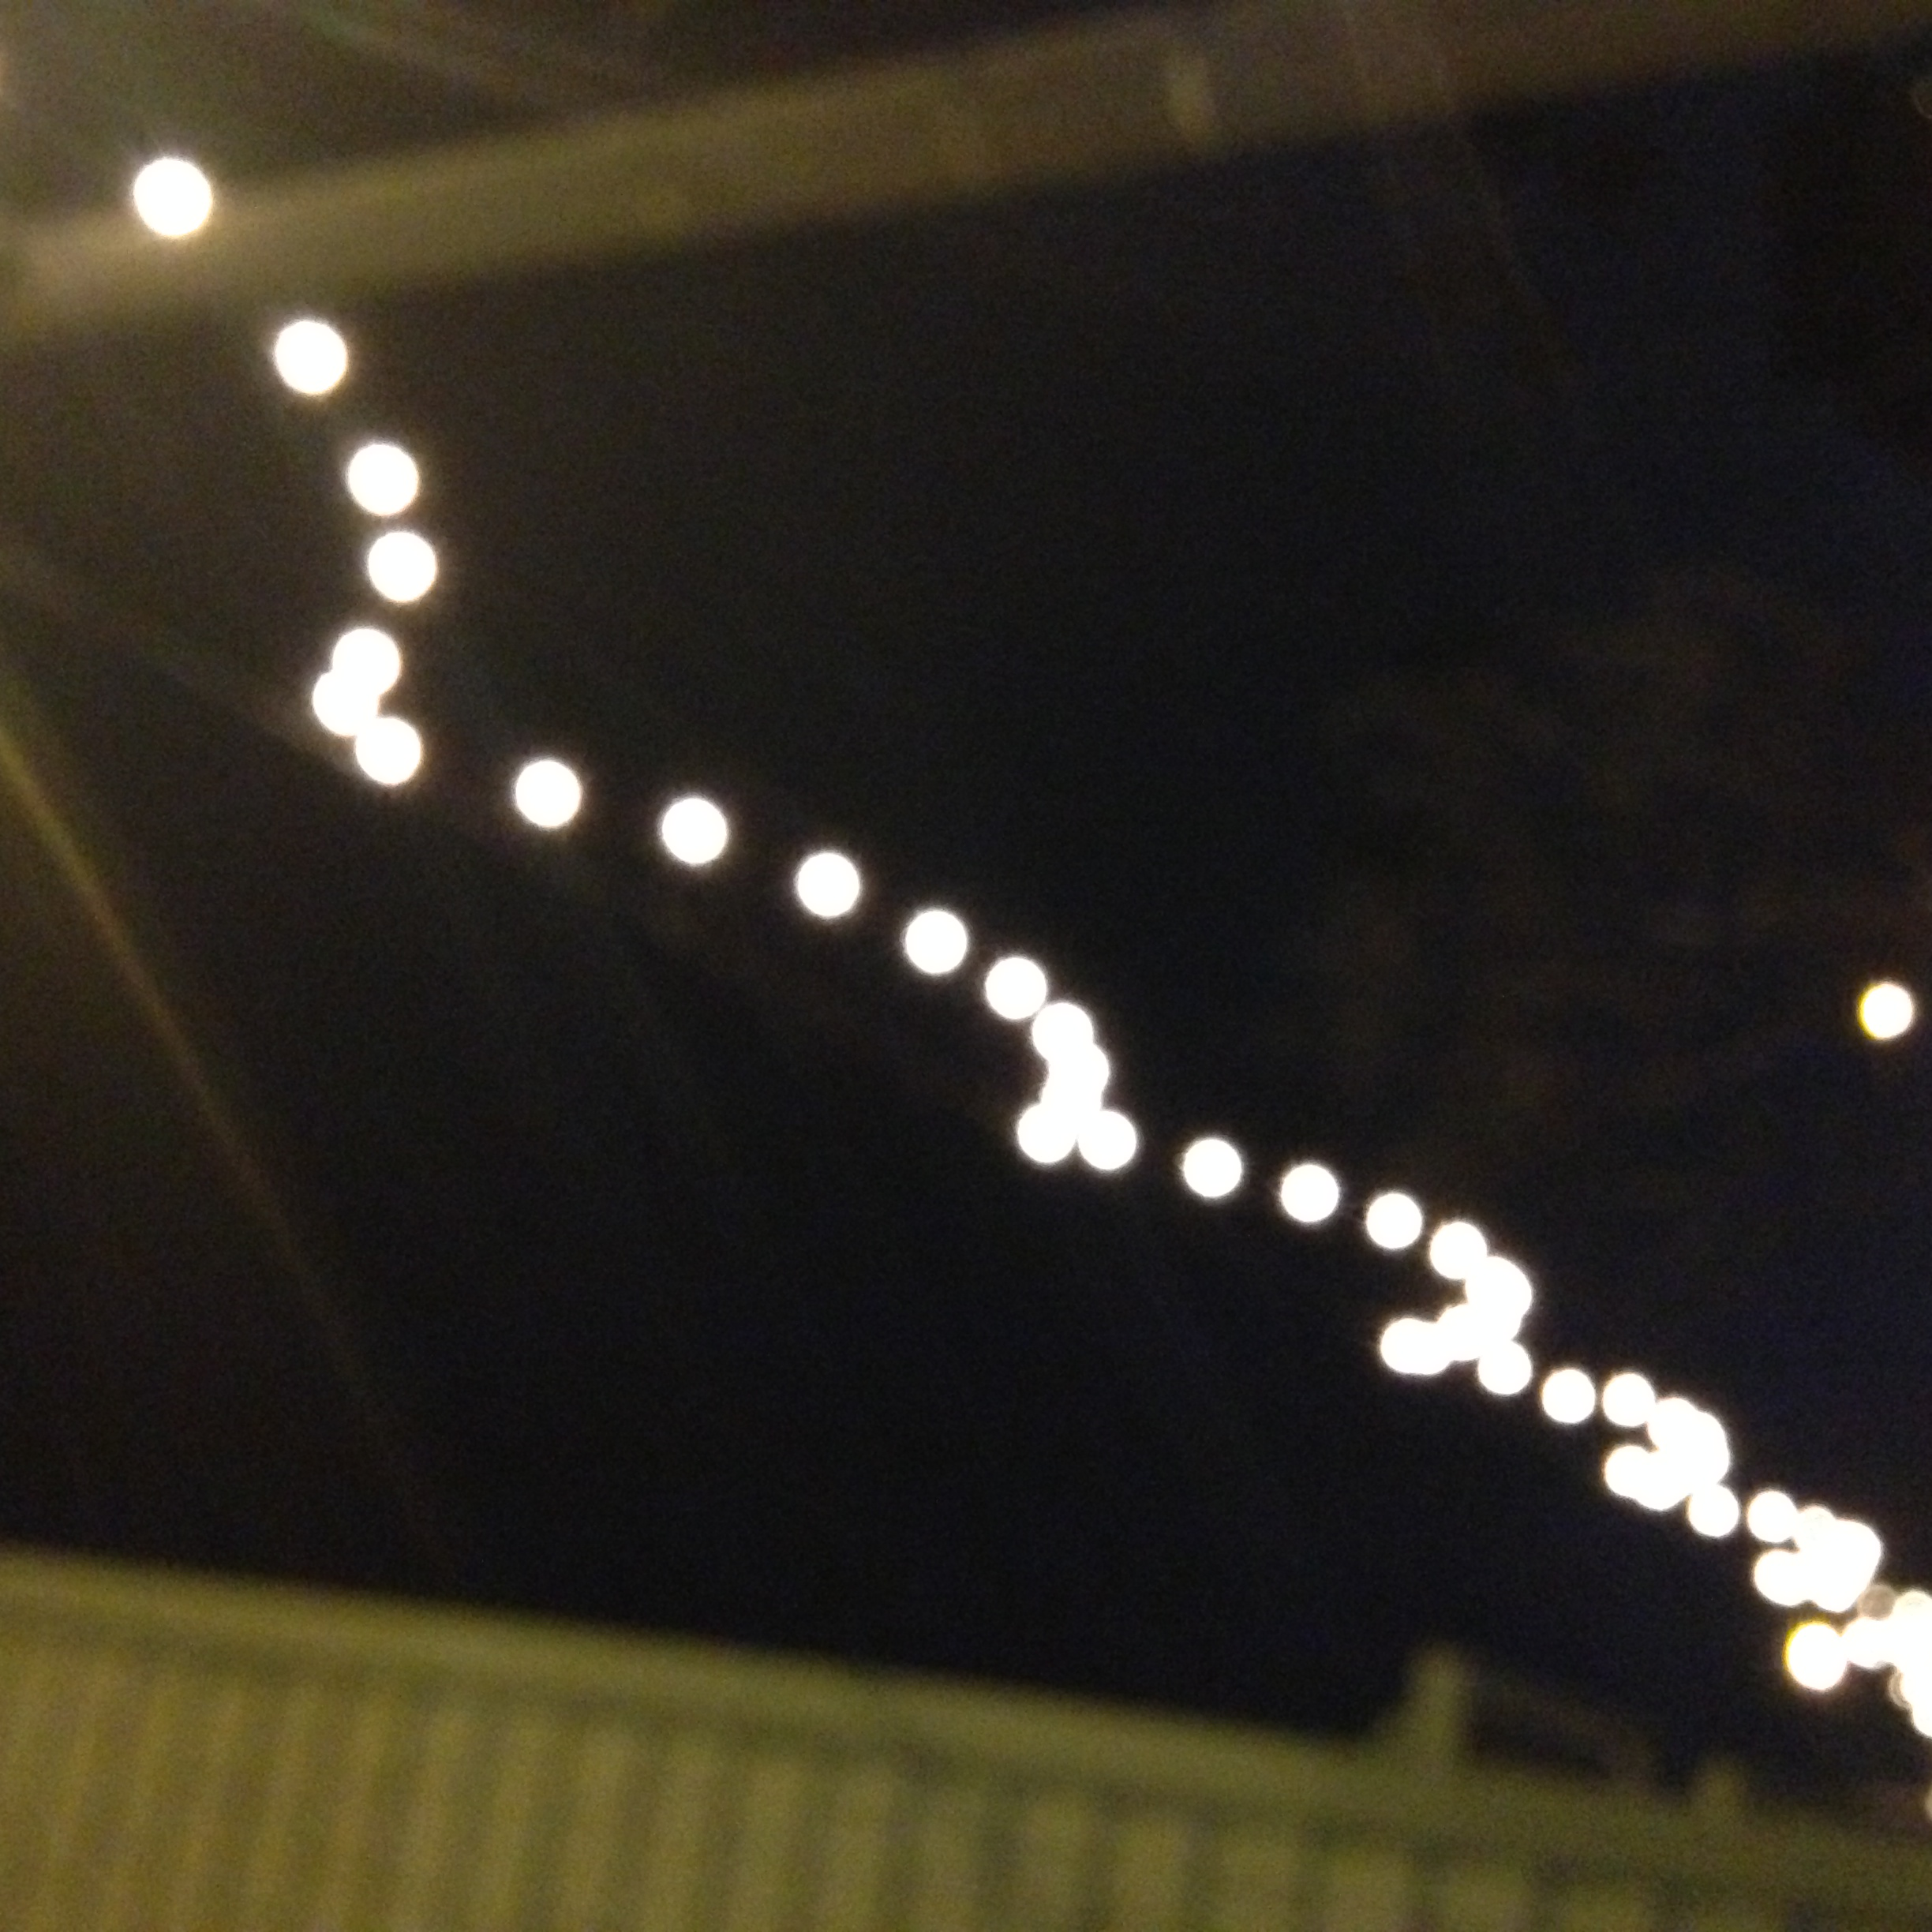 Main Street lights setting a romantic mood for yesterday's date night.